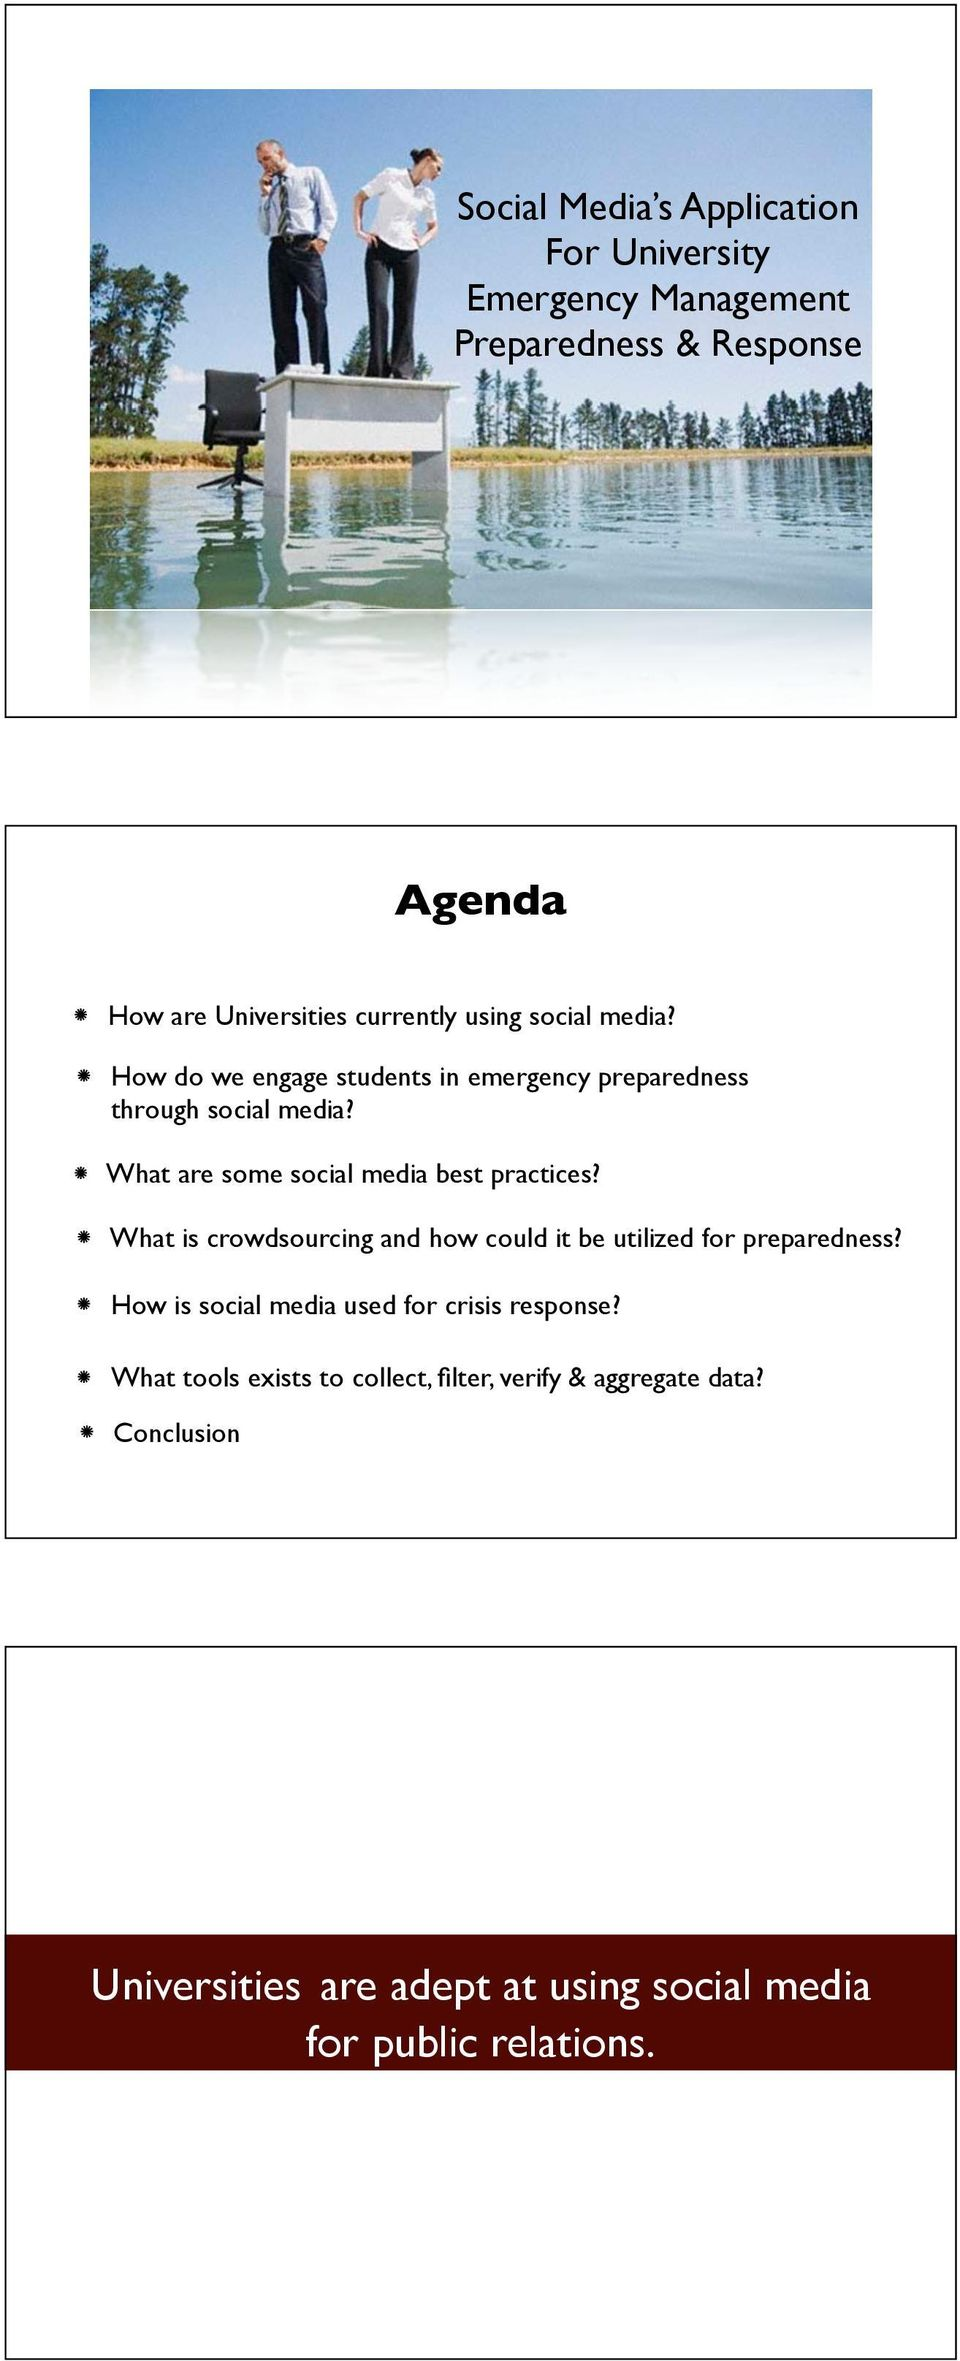 What are some social media best practices? What is crowdsourcing and how could it be utilized for preparedness?